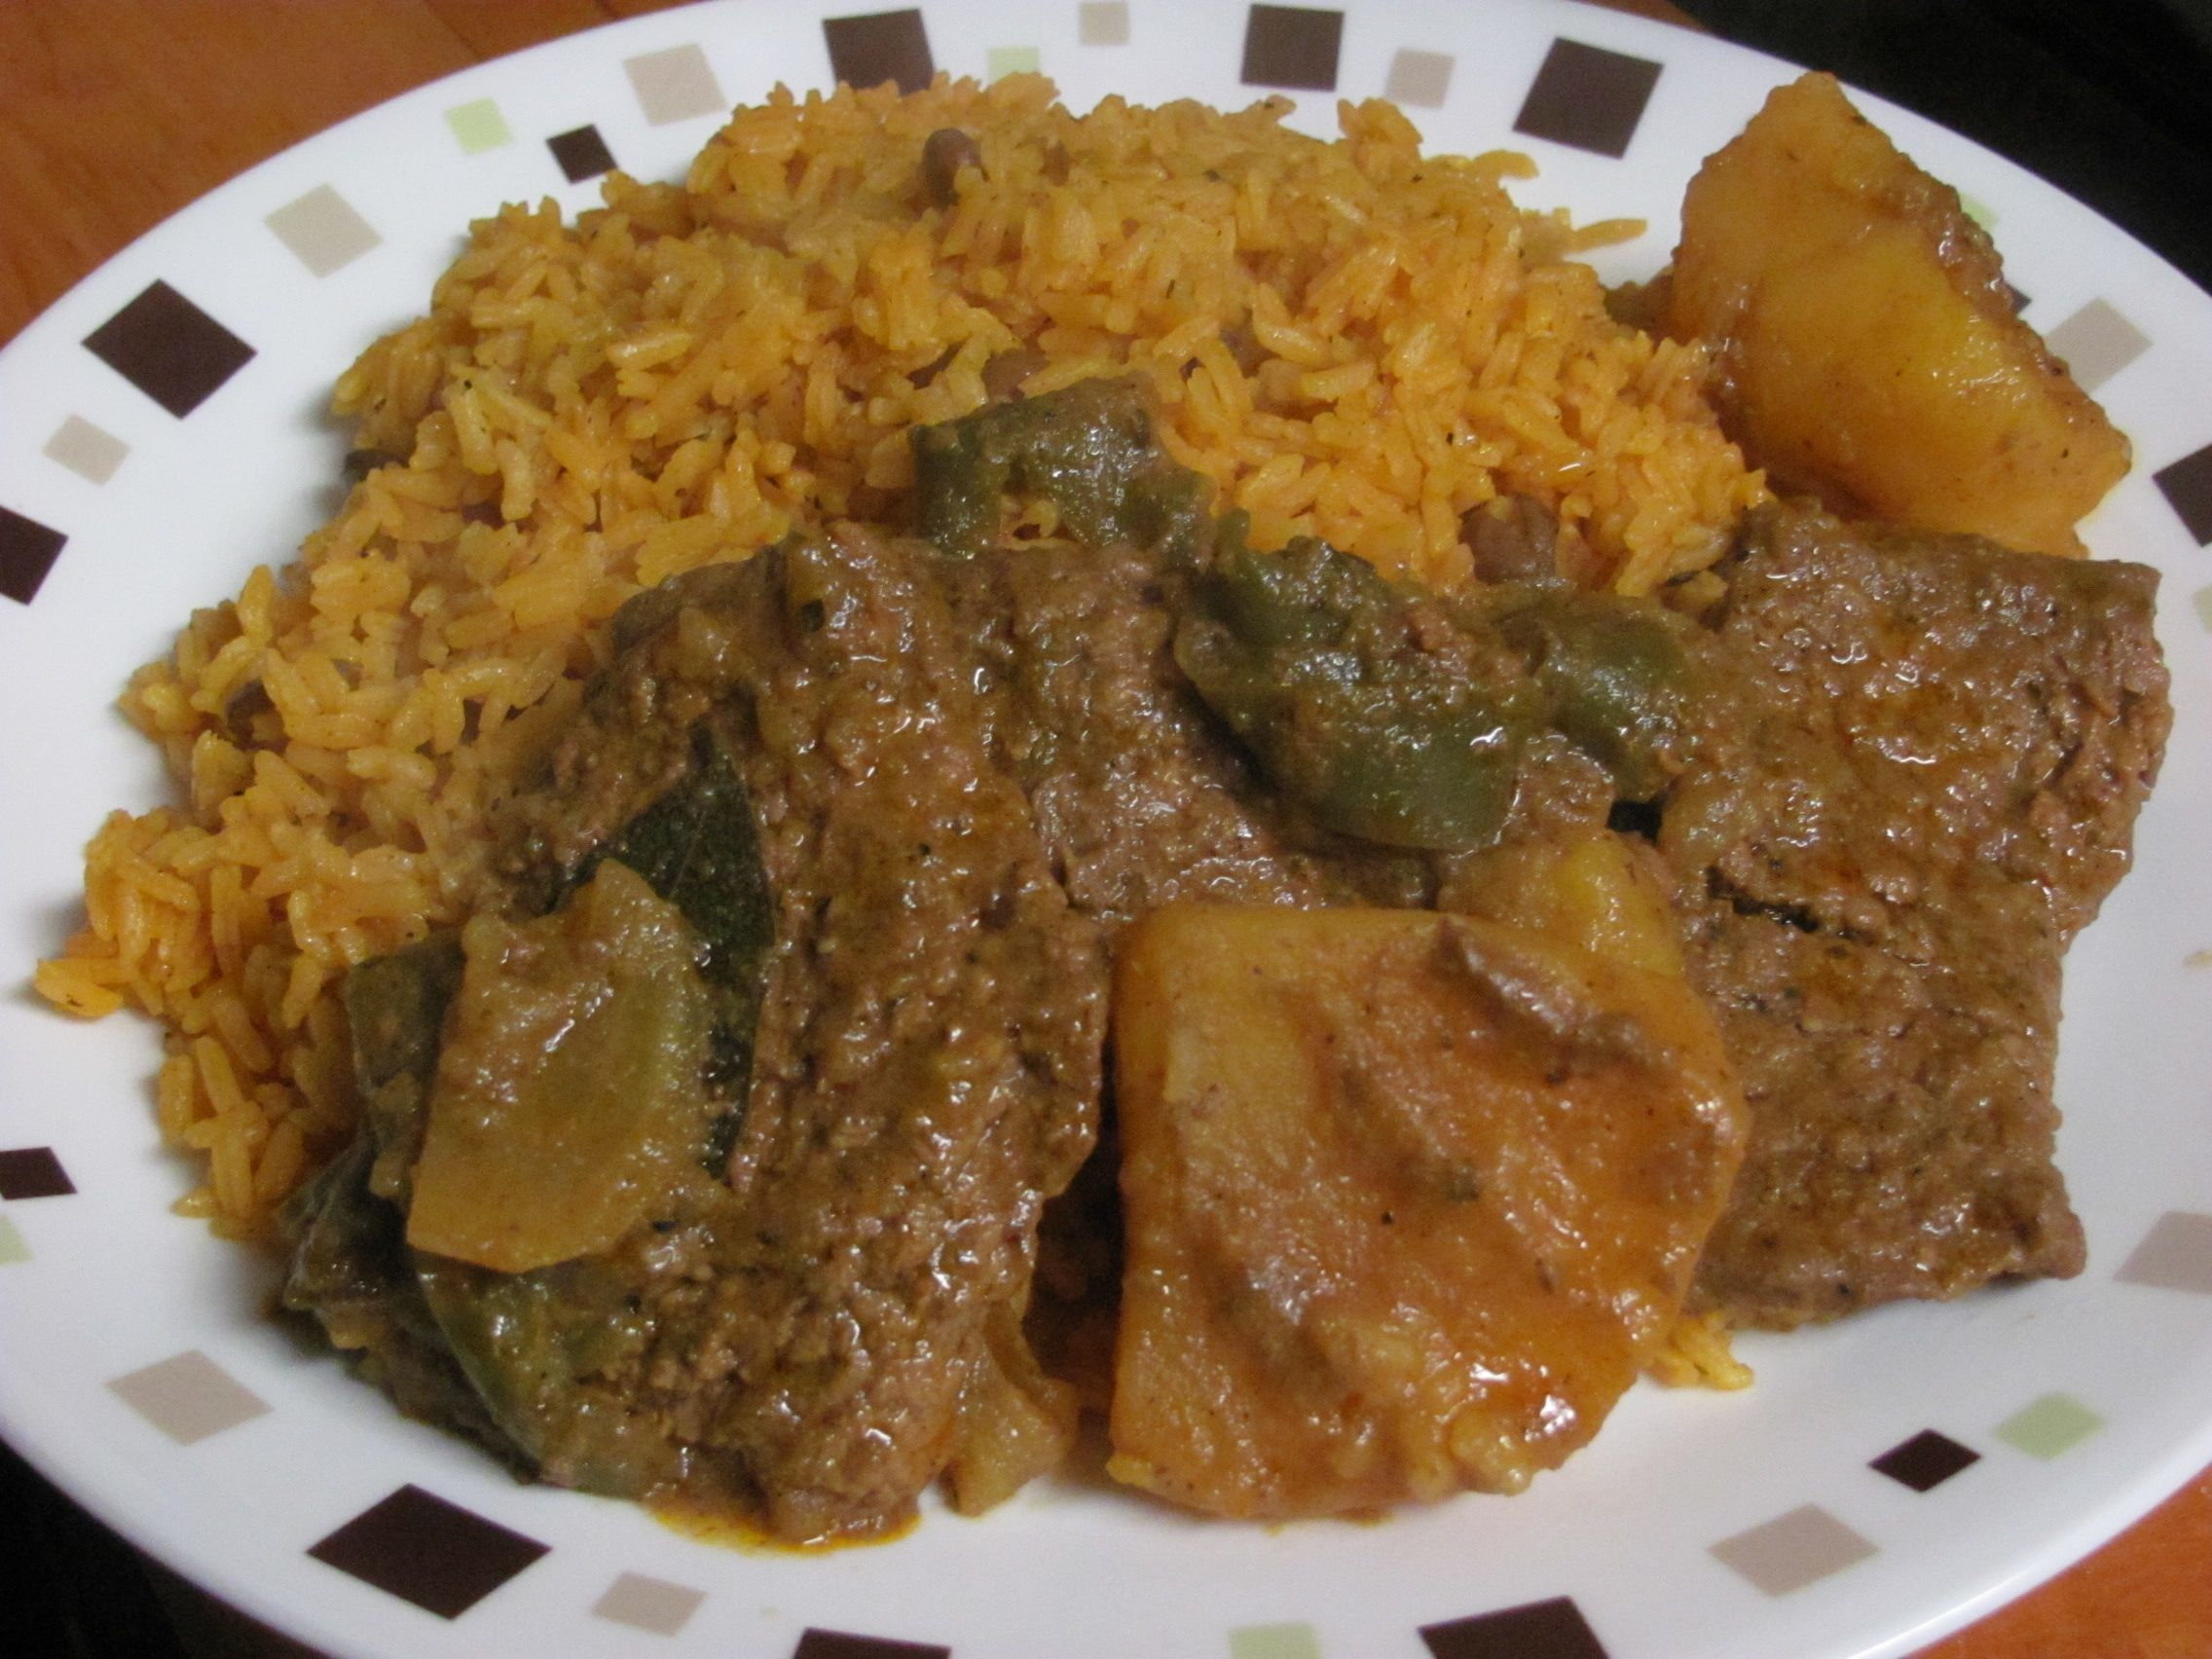 Puerto rican recipes easy recipe puerto rican styled pepper steak puerto rican recipes easy recipe puerto rican styled pepper steak forumfinder Images